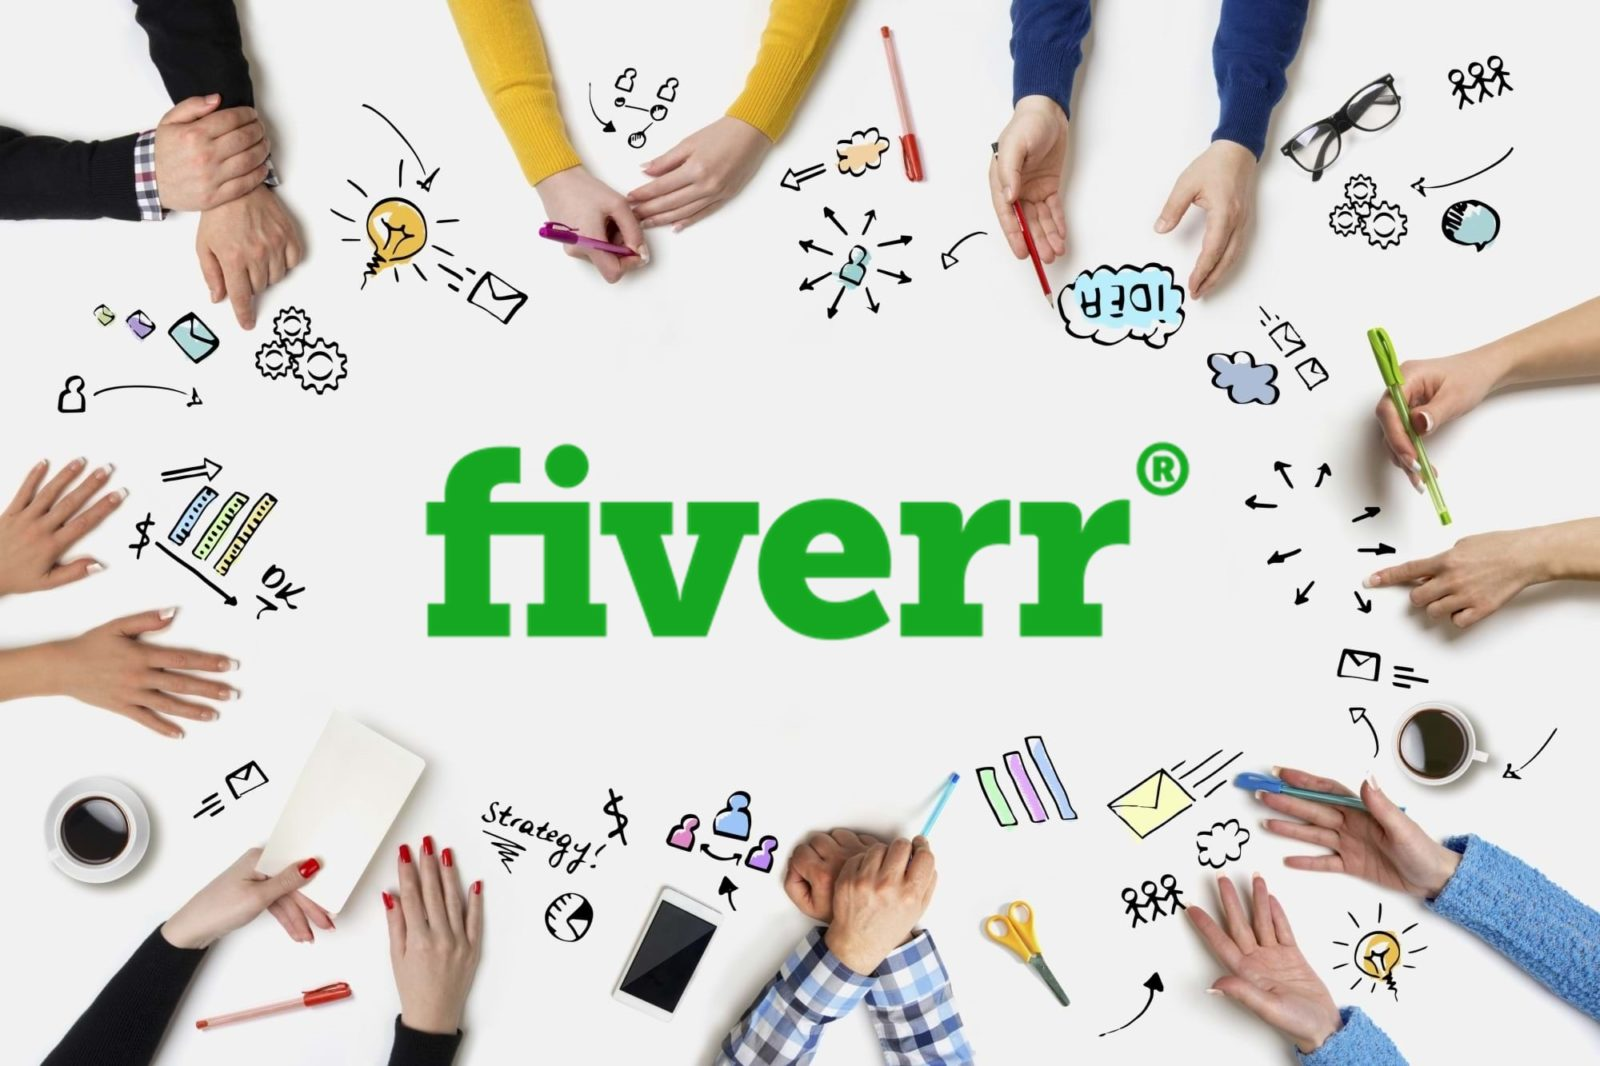 Fiverr Referral Gamification